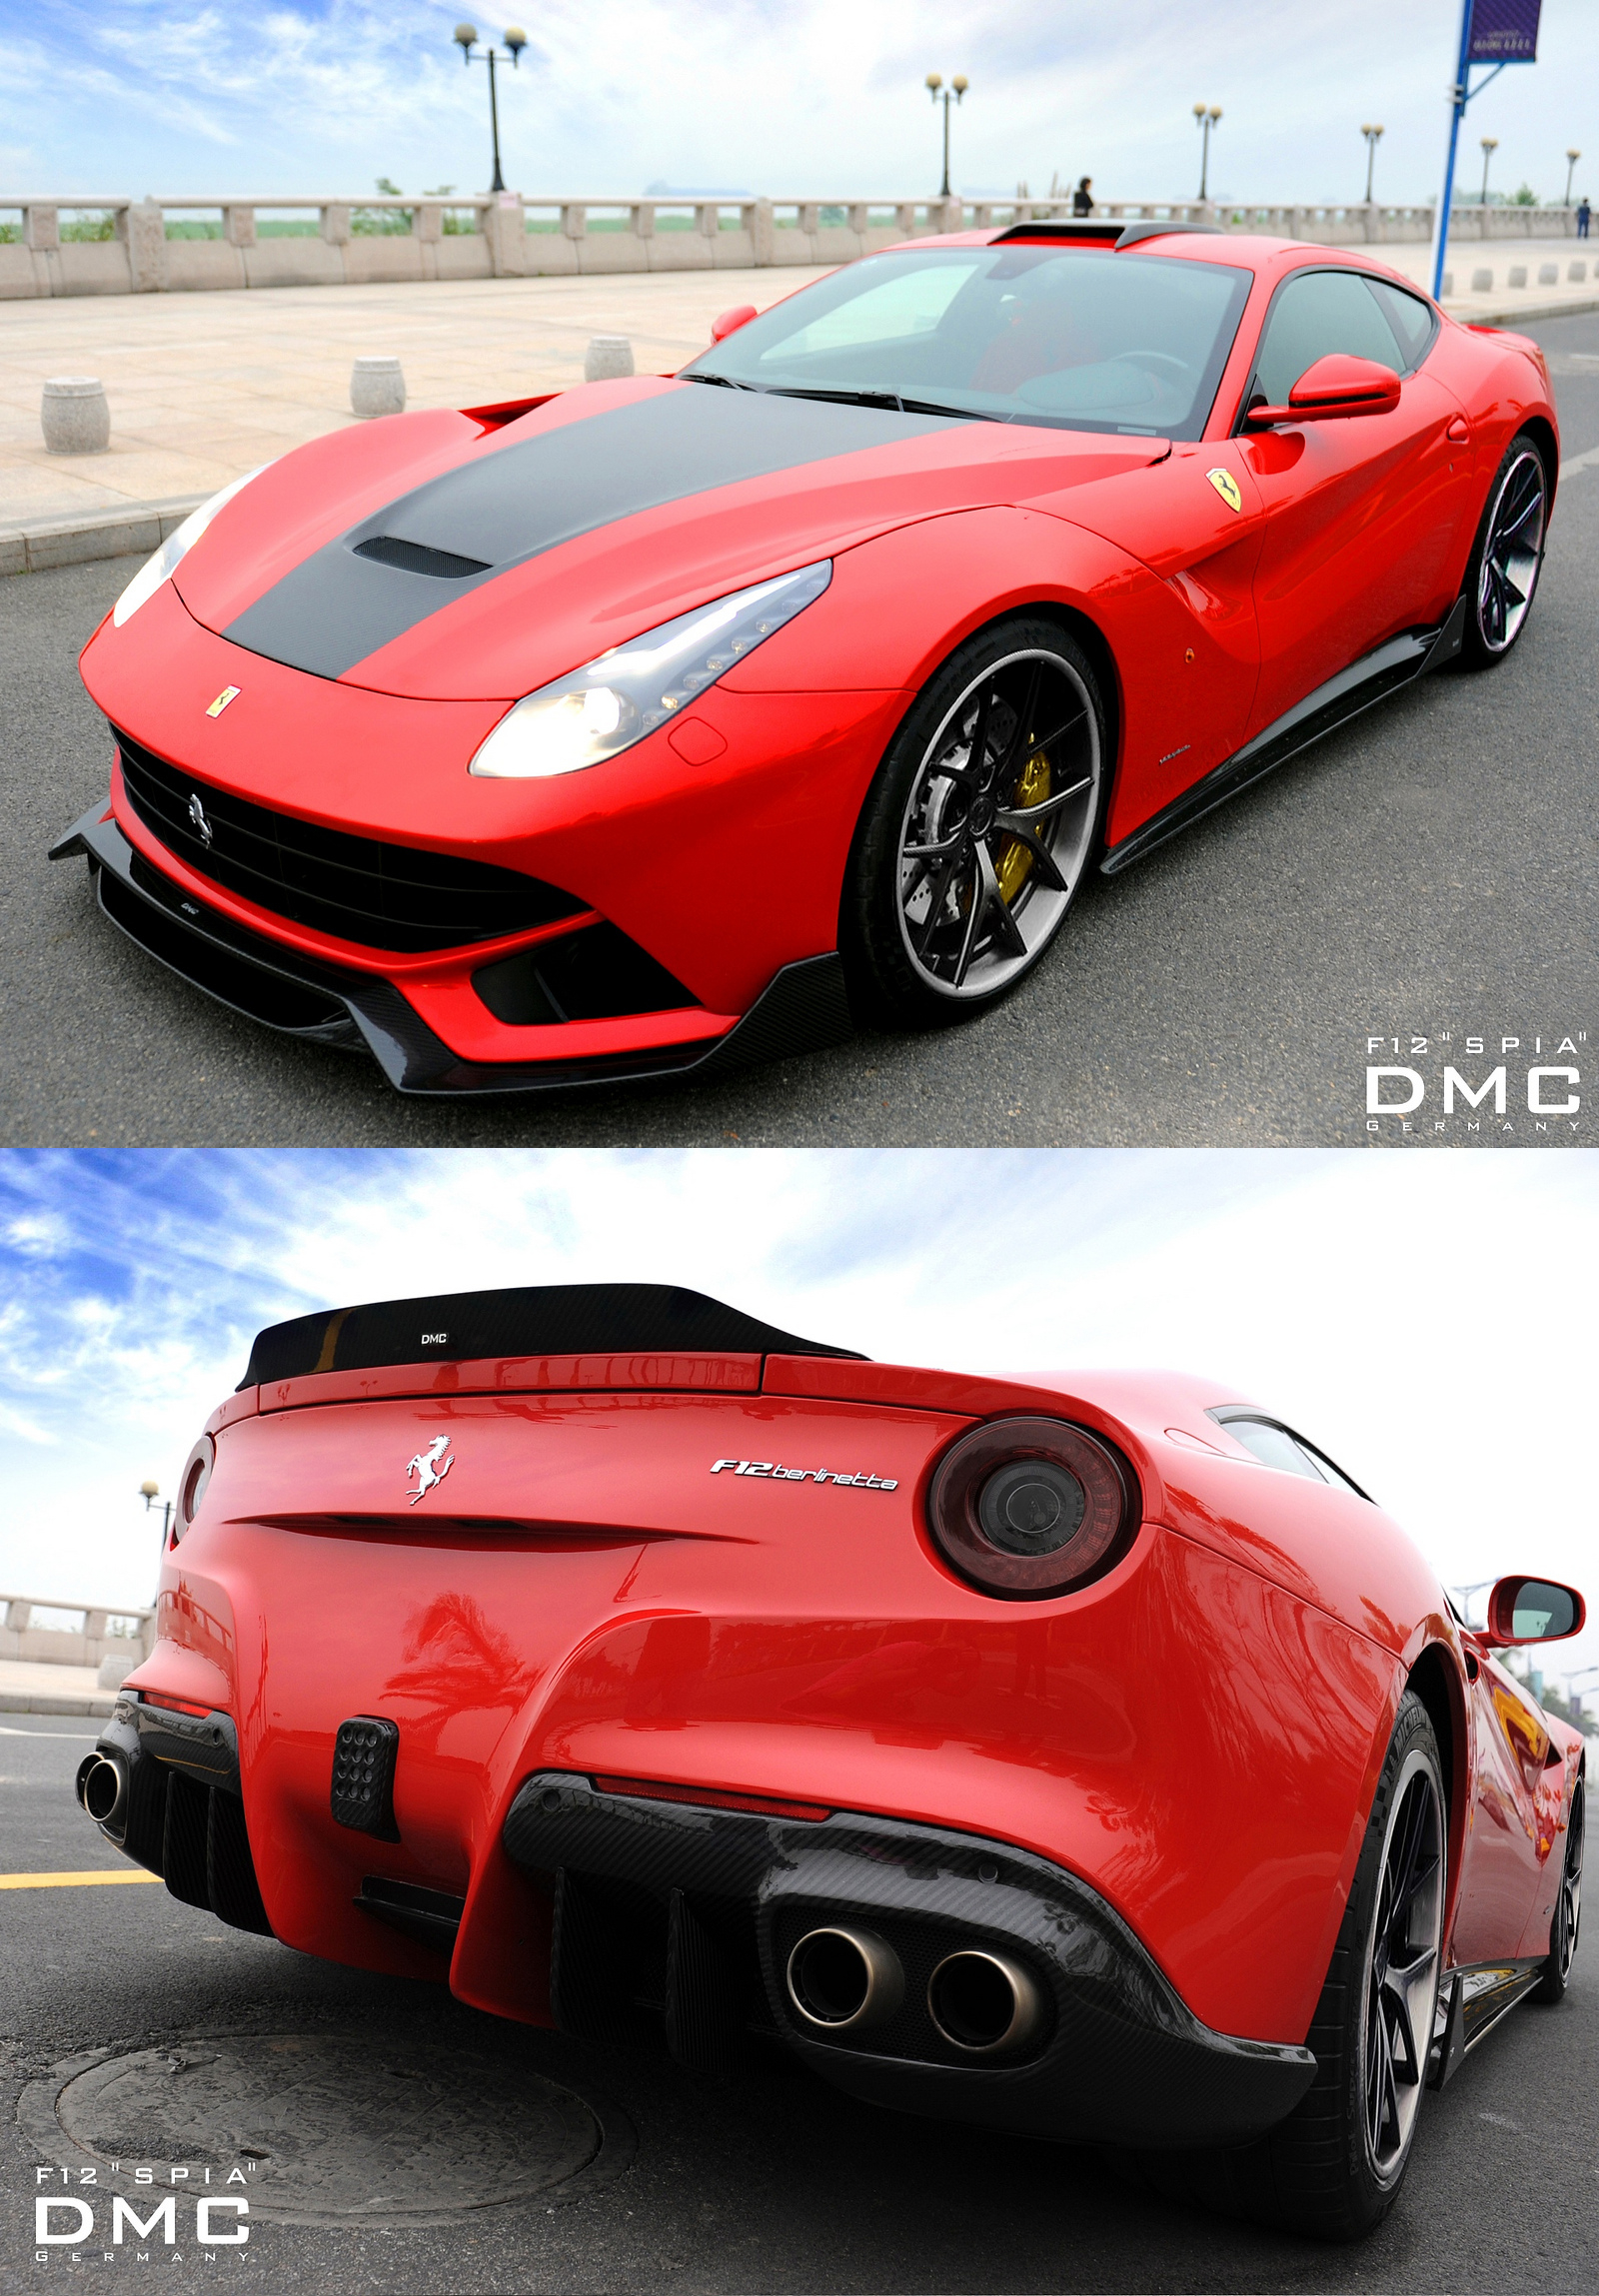 DMC F12 SPIA Base Kit